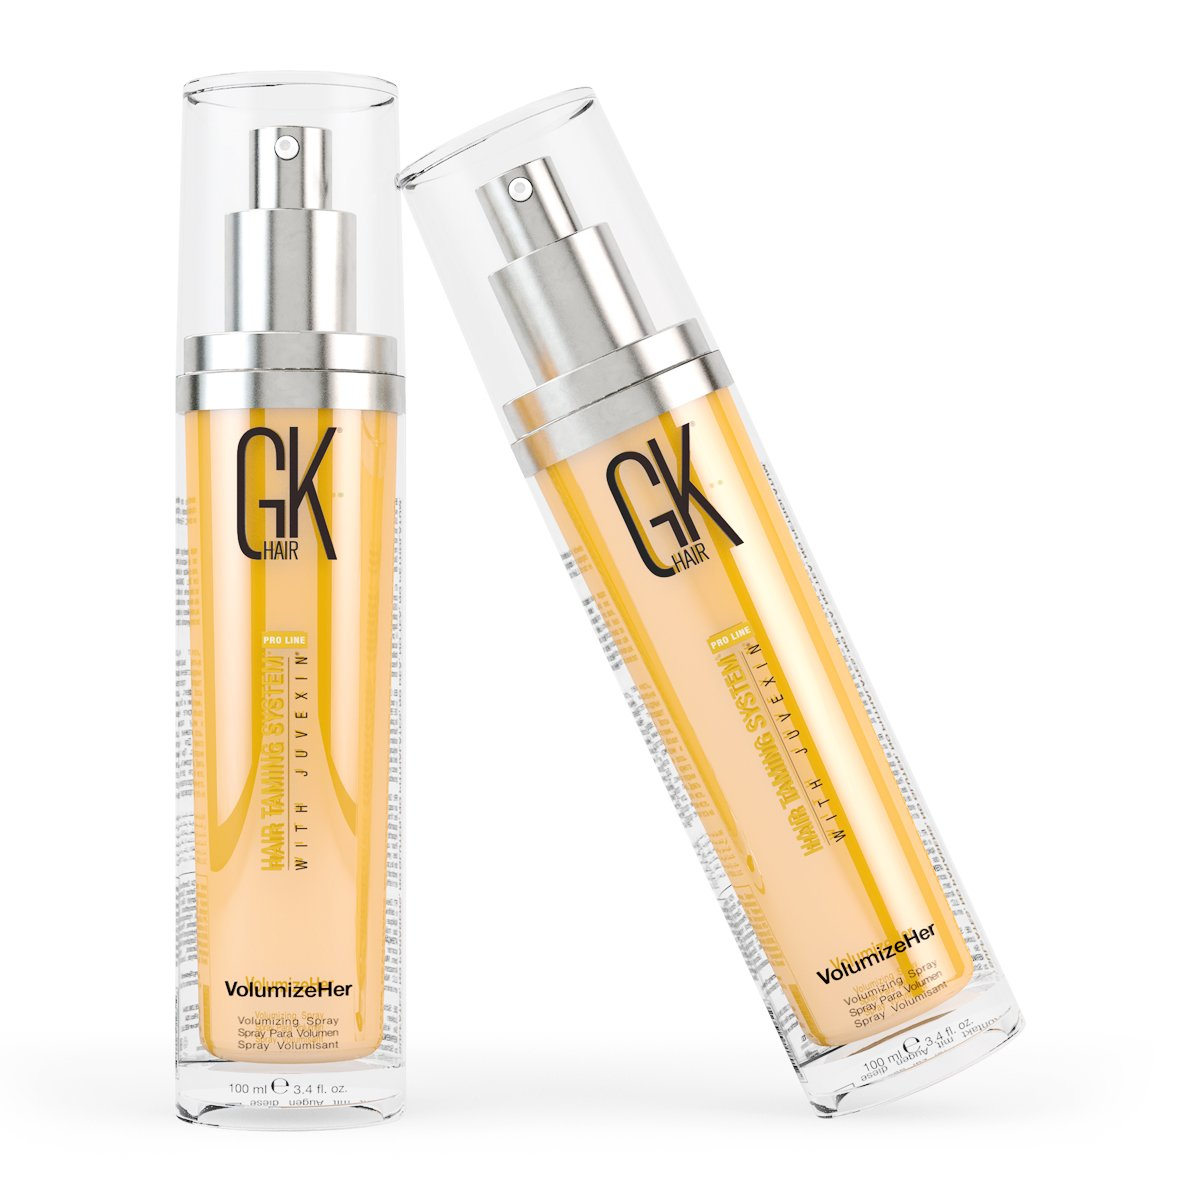 Gk Hair Volumizeher   100ml Spray